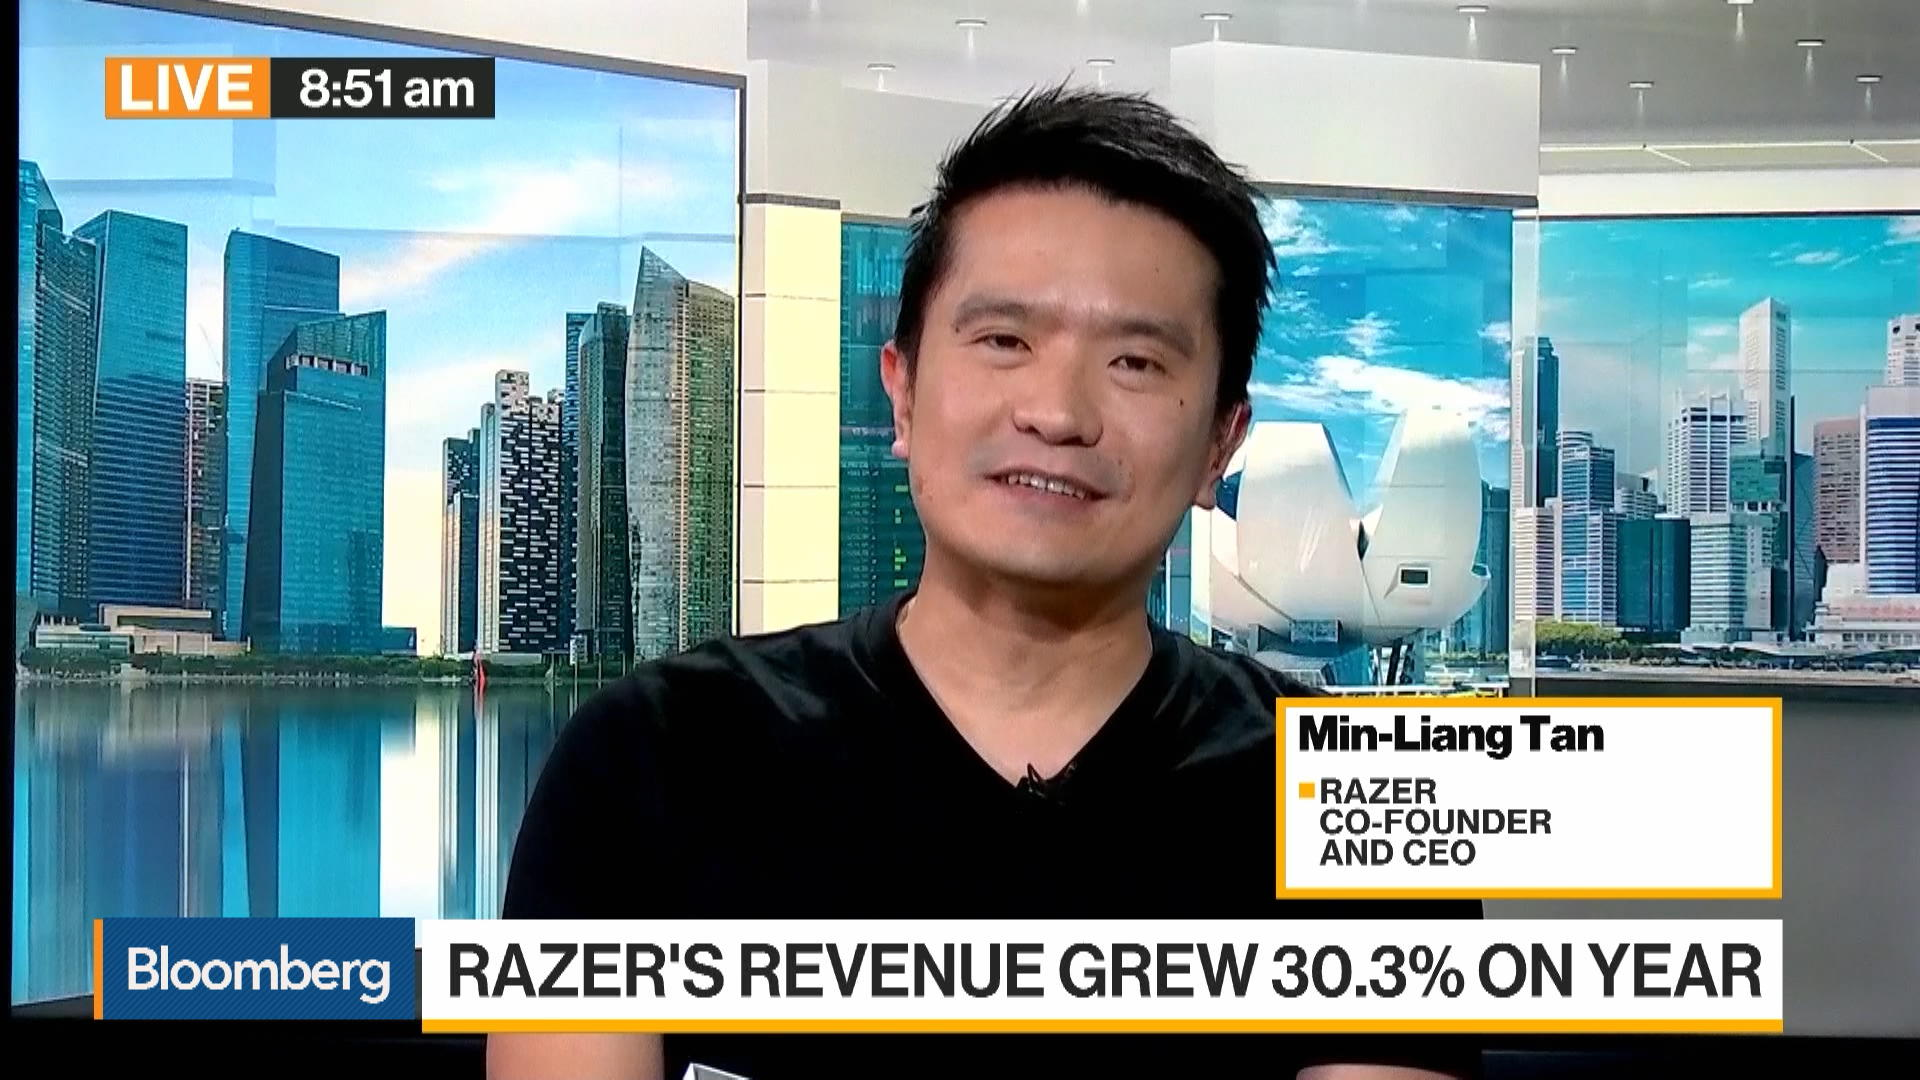 Razer CEO Min-Liang Tan on Earnings, Tencent Partnership, Cloud Gaming, Fintech